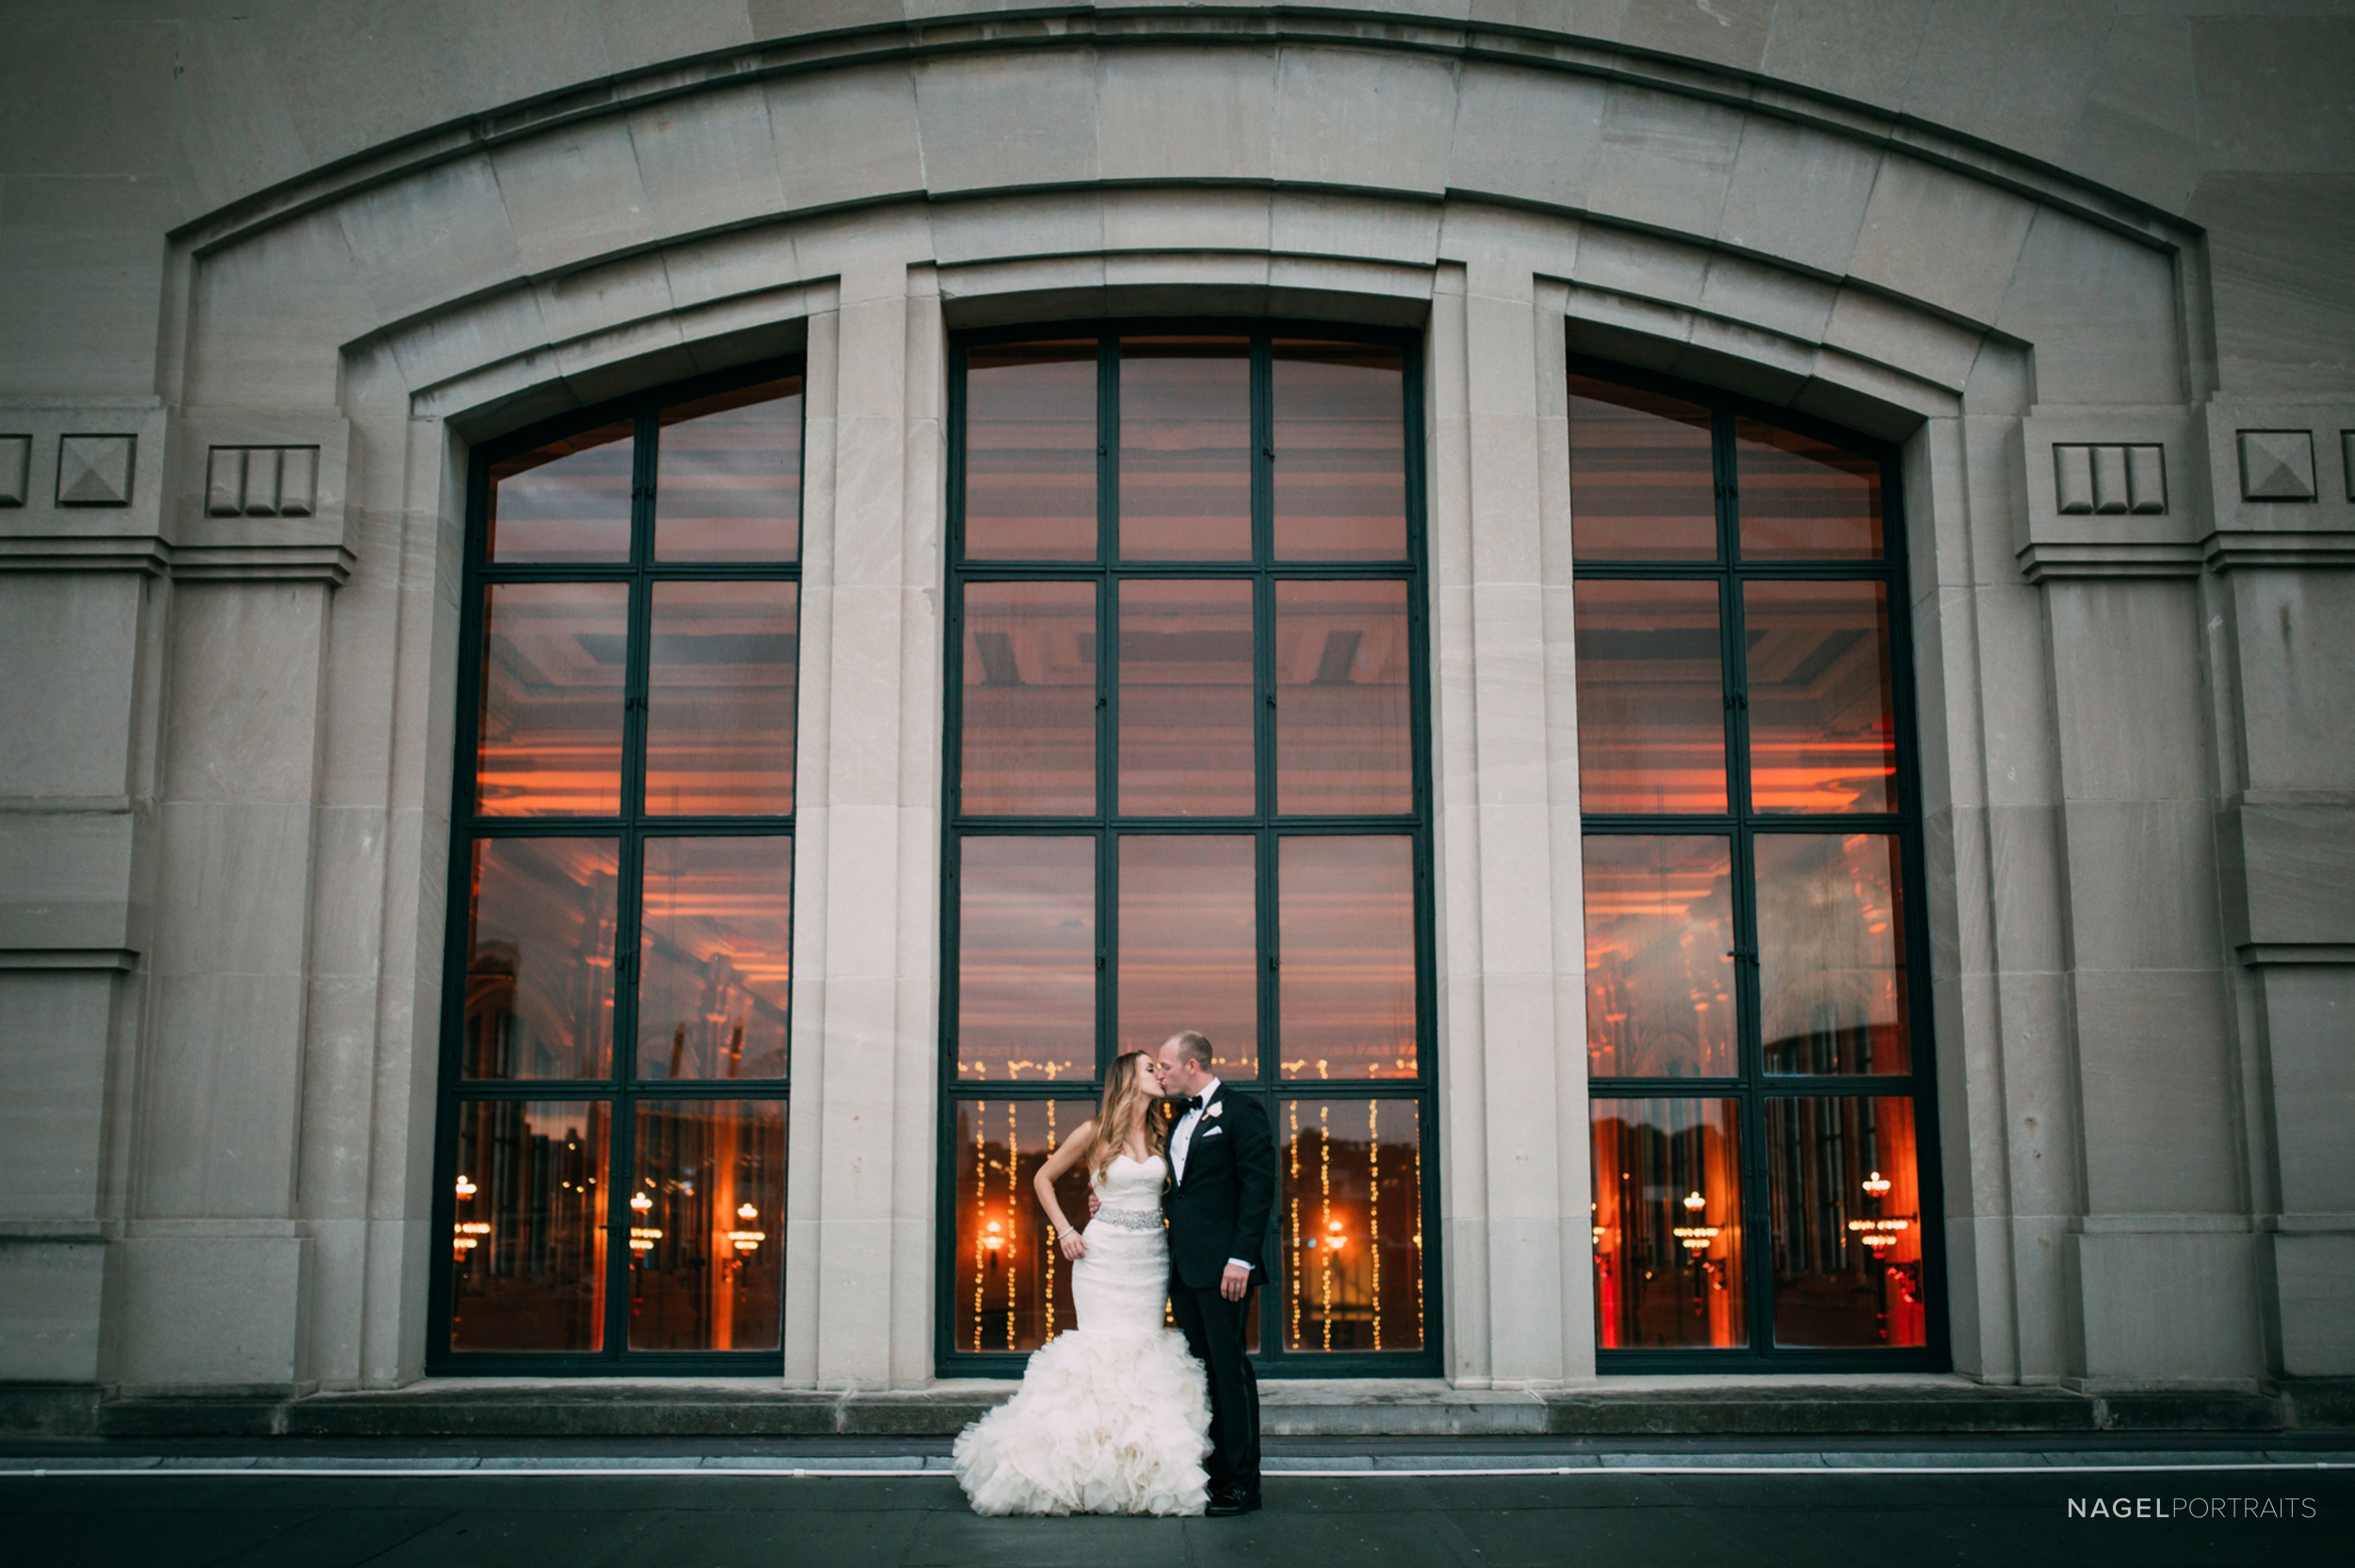 Bride and groom on a rooftop on their wedding day in front of a large window at Union Station